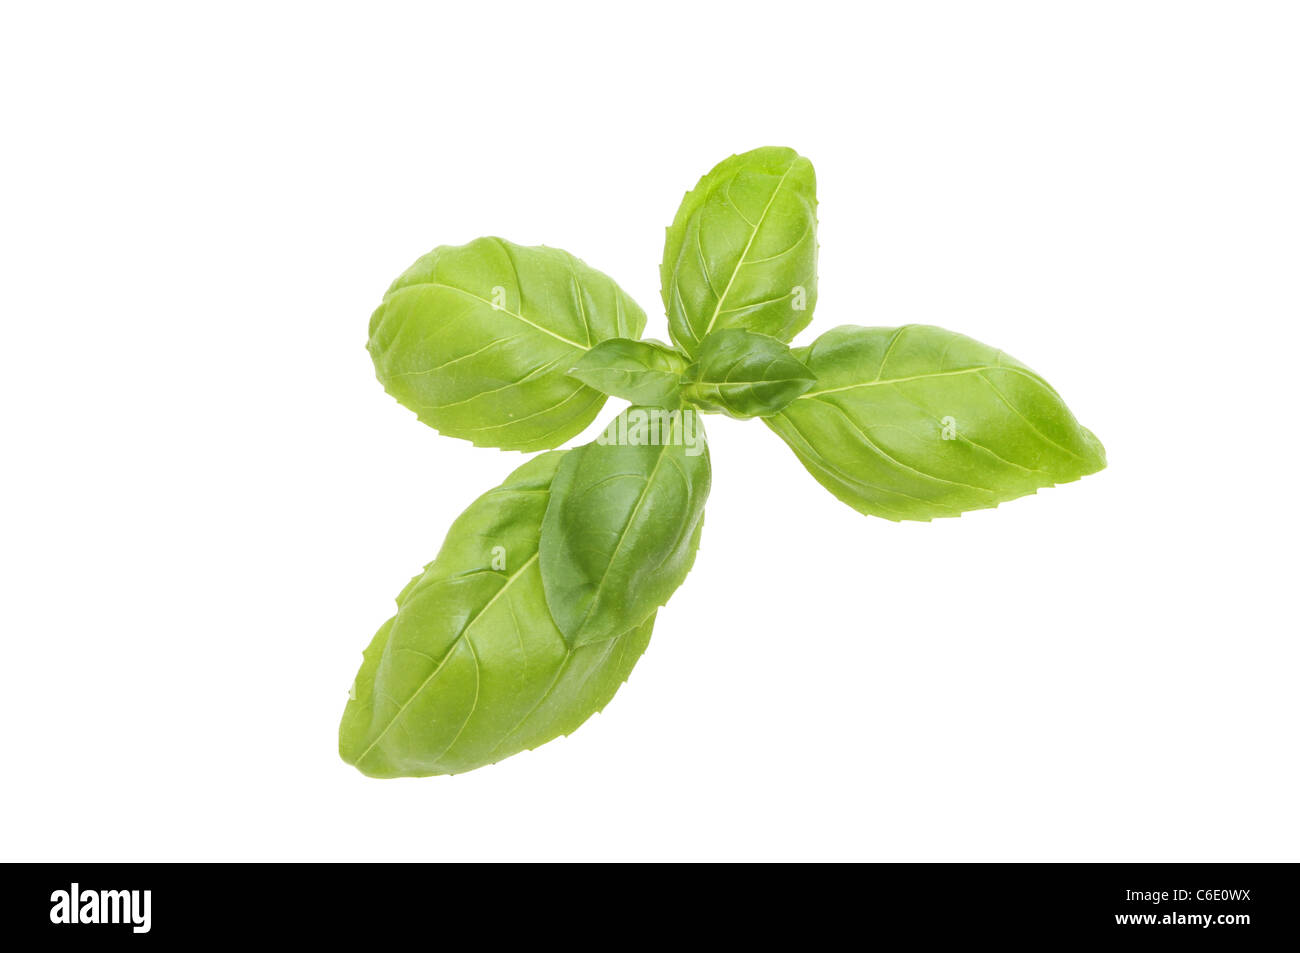 Sprig of fresh basil herb isolated against white - Stock Image